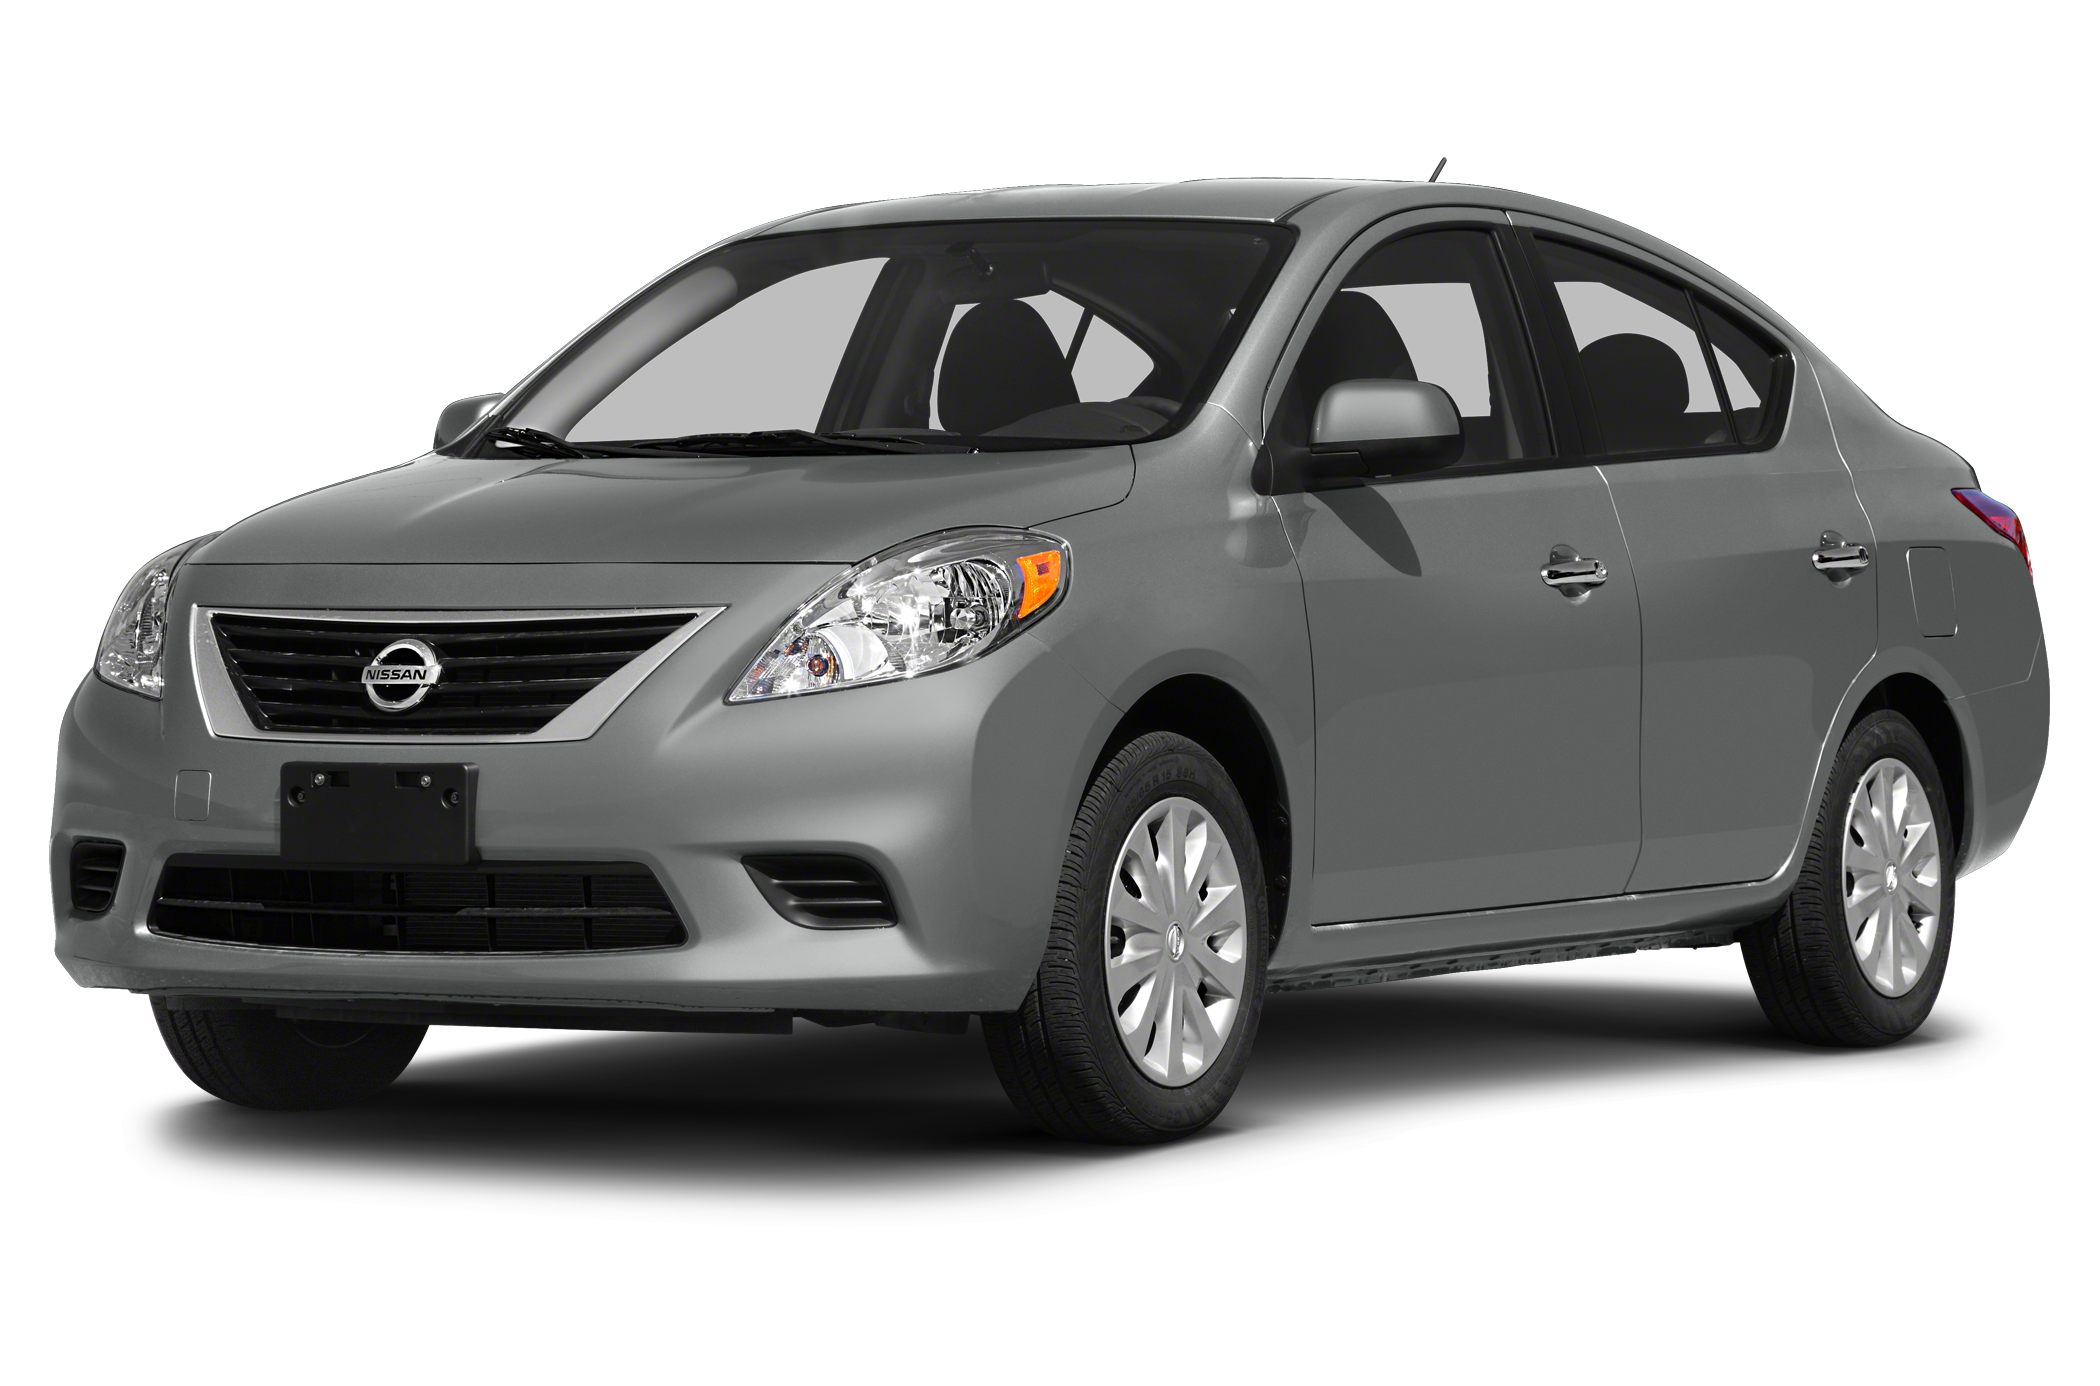 2014 Nissan Versa 16 SV Vehicle Options Air Conditioning Passenger Airbag Tachometer Child Safety